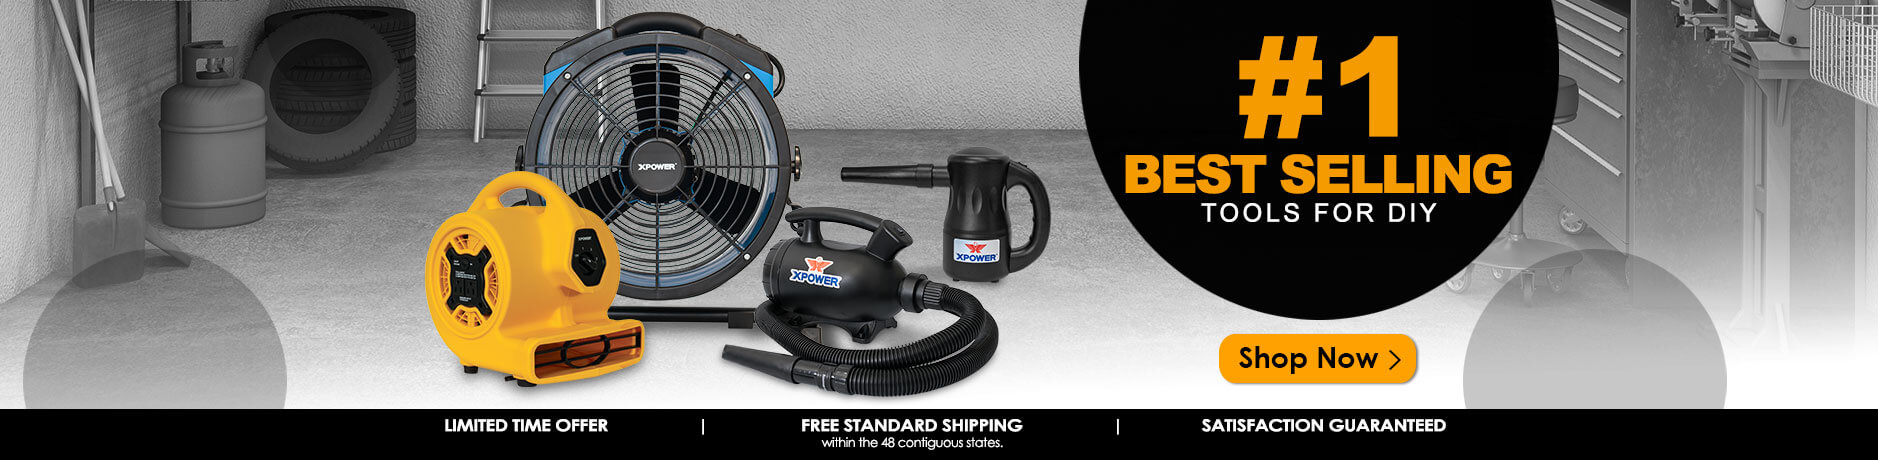 xpower best seller air mover